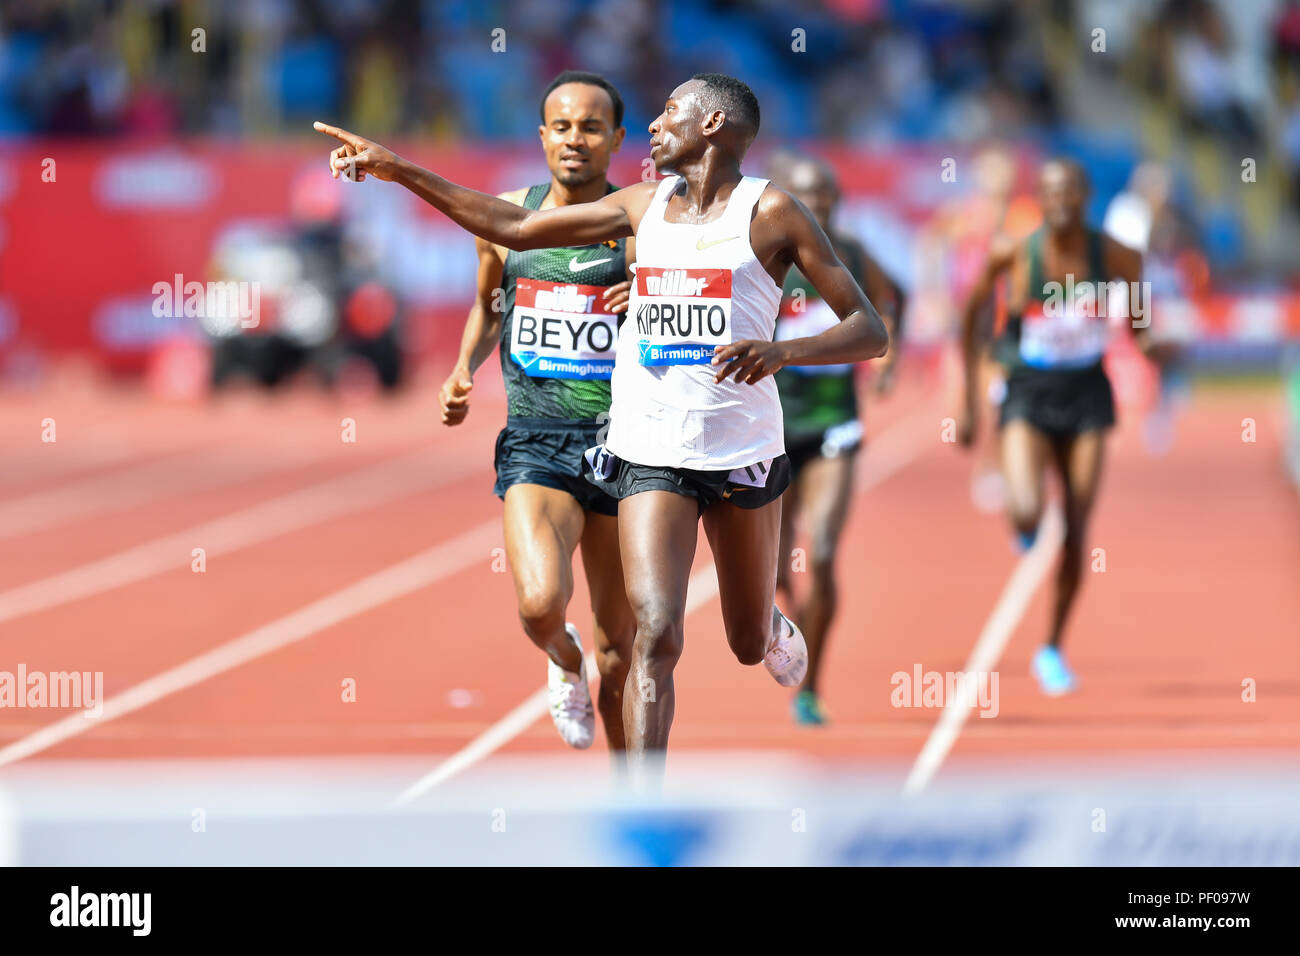 Birmingham, UK. 18th August 2018. Conseslus Kipruto (KEN) in Men's 3000m Steeplechase during 2018 IAAF Diamond League - Birmingham at Alexander Stadium on Saturday, 18 August 2018. BIRMINGHAM, ENGLAND. Credit: Taka G Wu Credit: Taka Wu/Alamy Live News Stock Photo